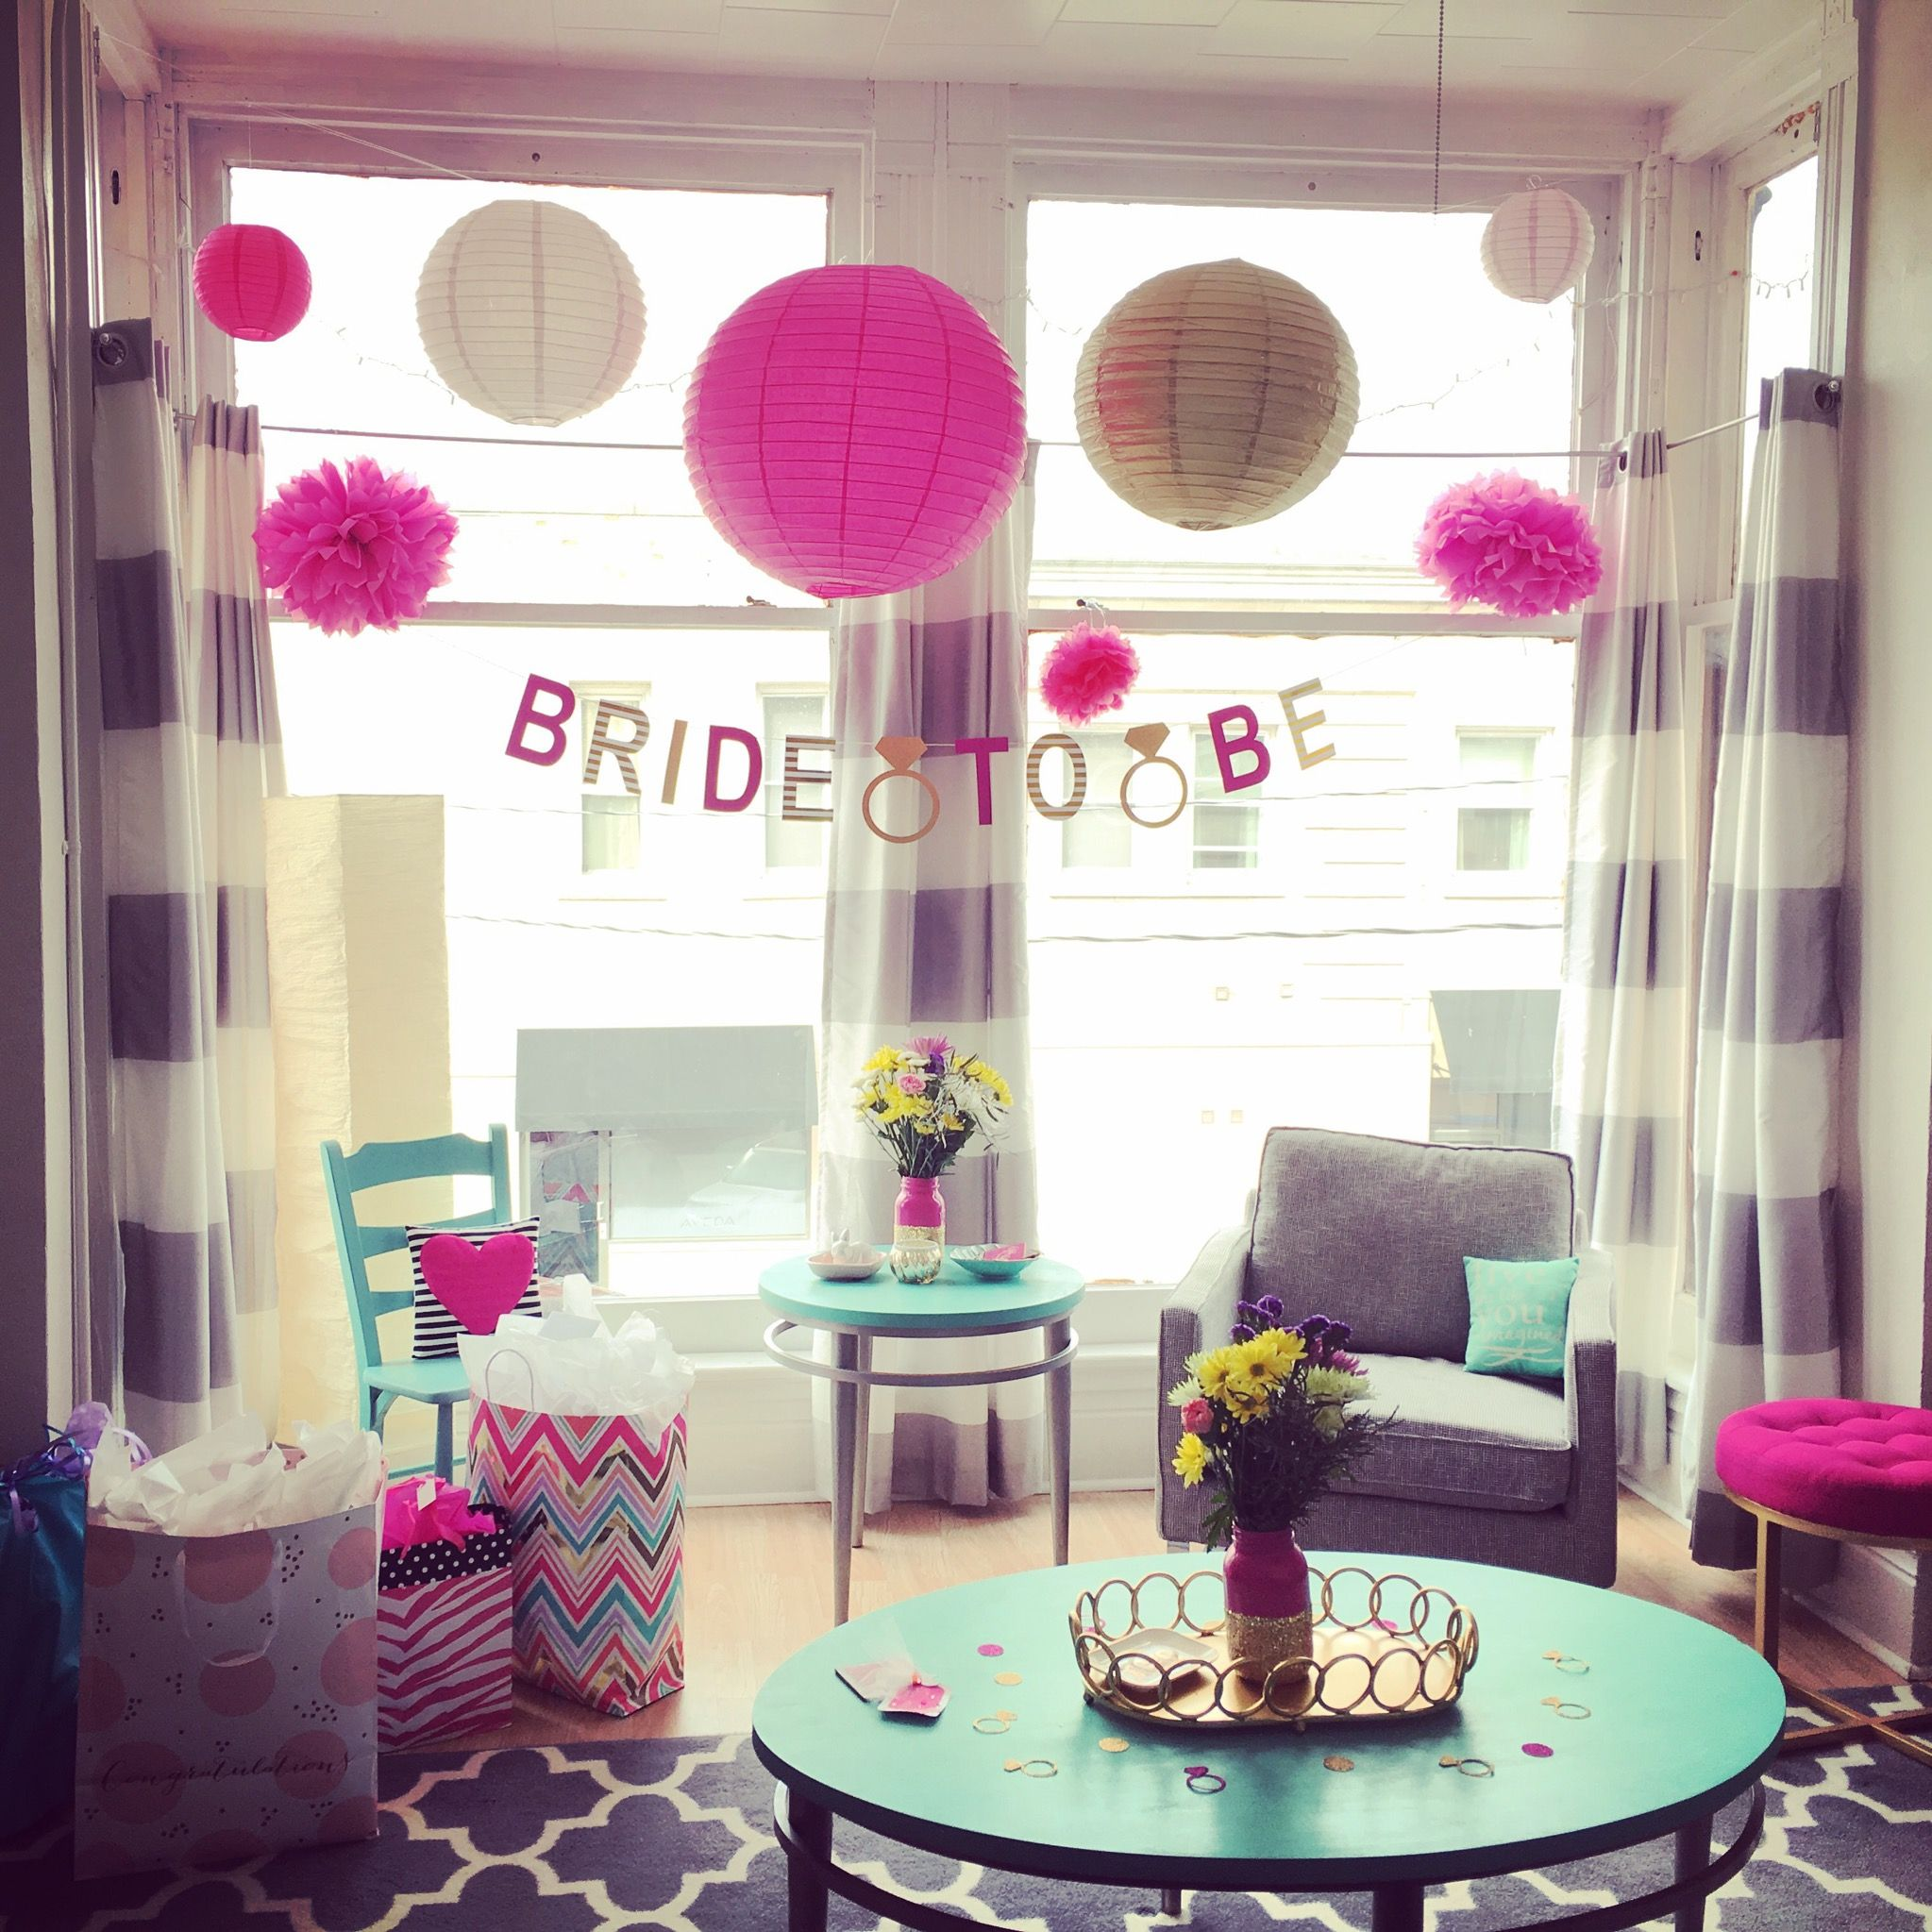 Bridal shower bachelorette party decorations at home for Hotel decor for home